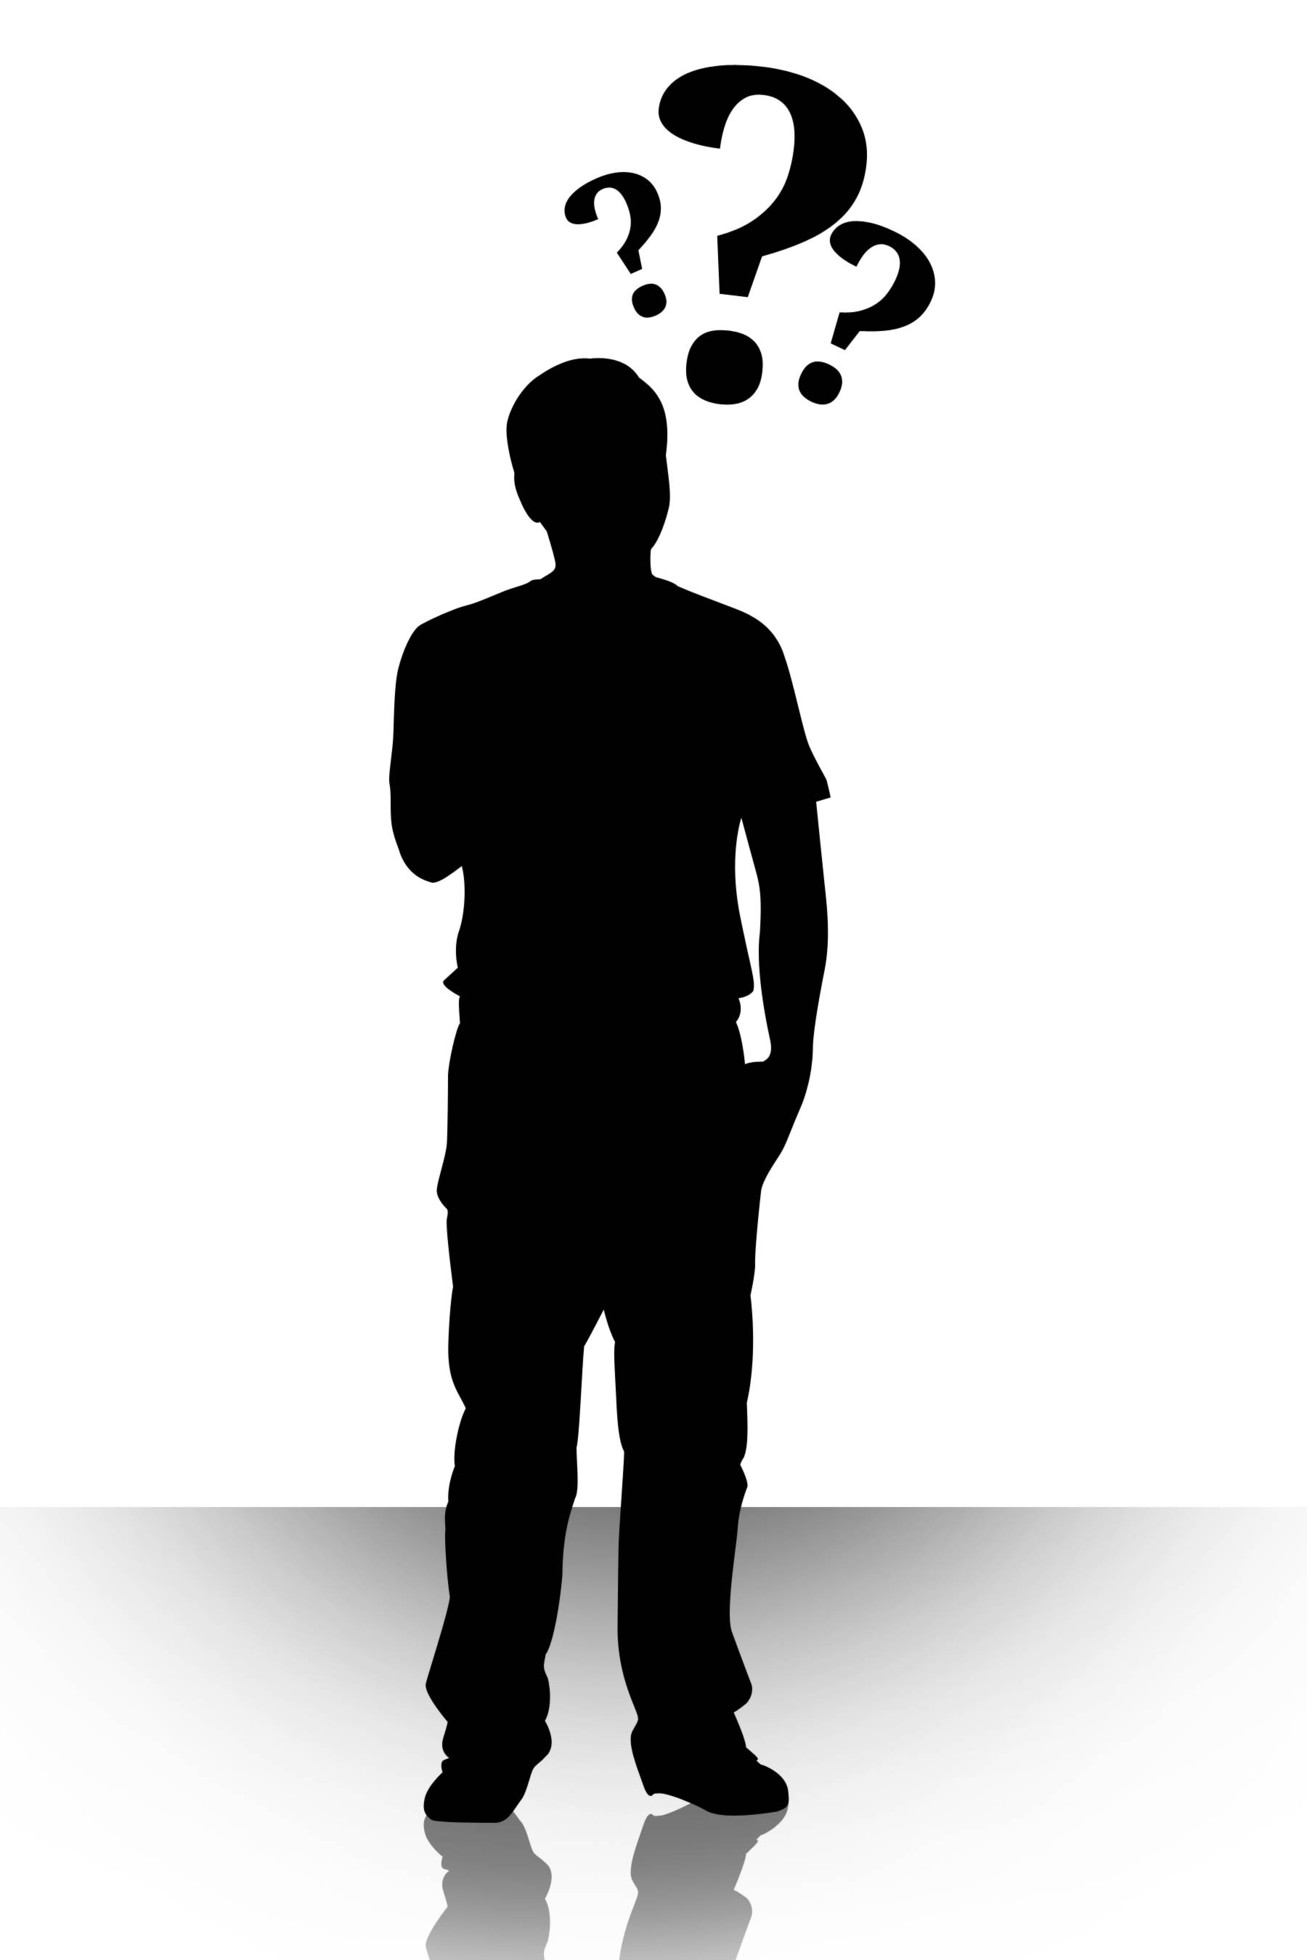 Thinking Png - Clipart Library-Thinking Png - Clipart library-15